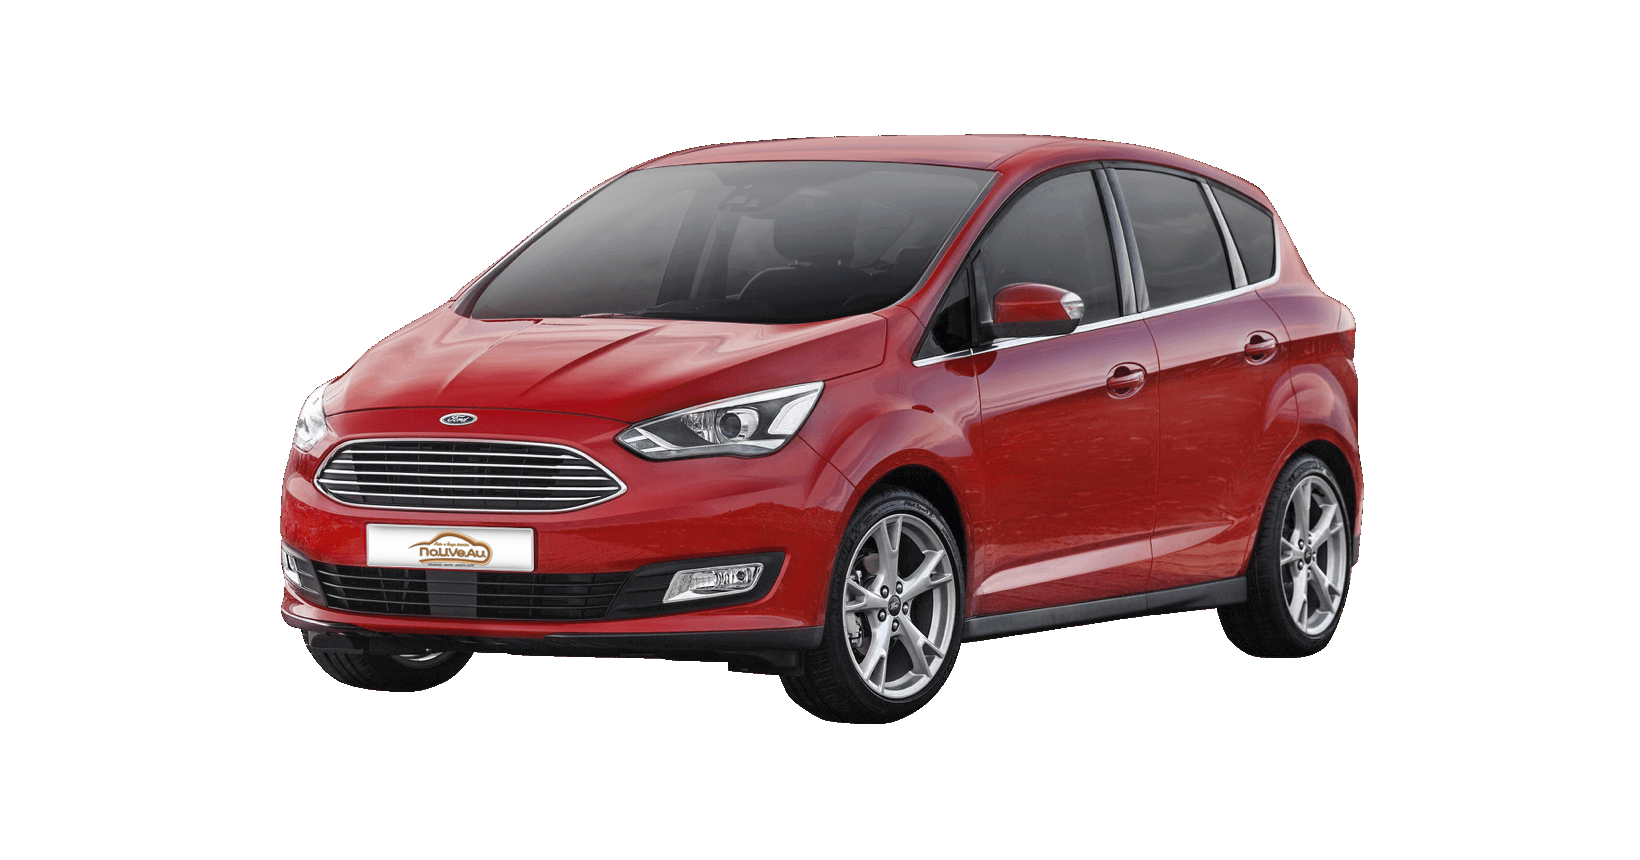 FORD C-MAX 1.5 TDCi 95cv S&S Business